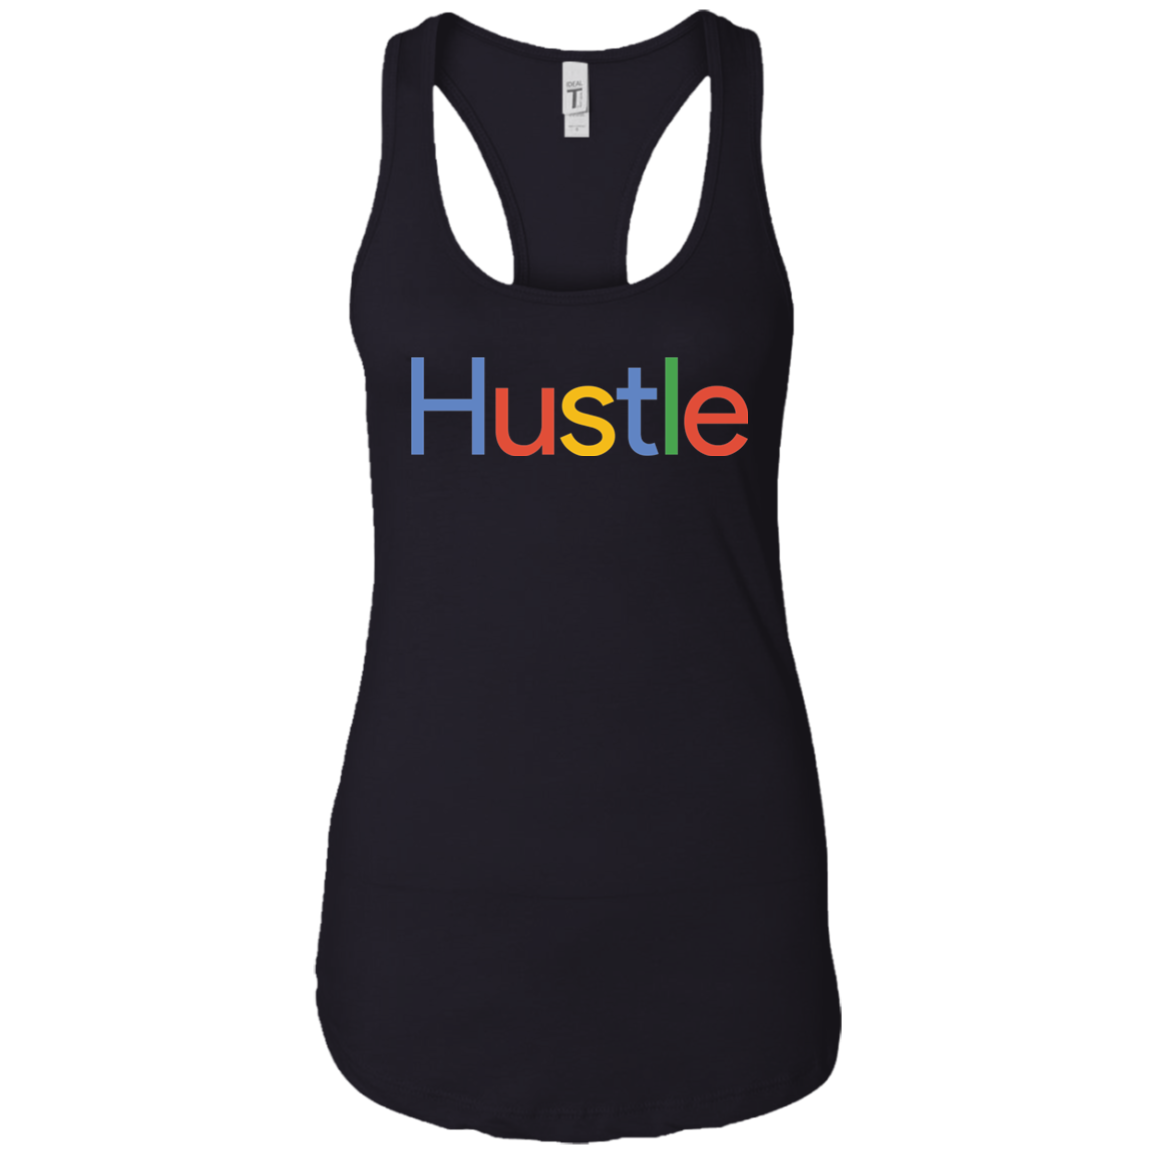 Hustle Ladies Racerback Tank | Entrepreneur Apparel & Gear | Entrepreneur Empire